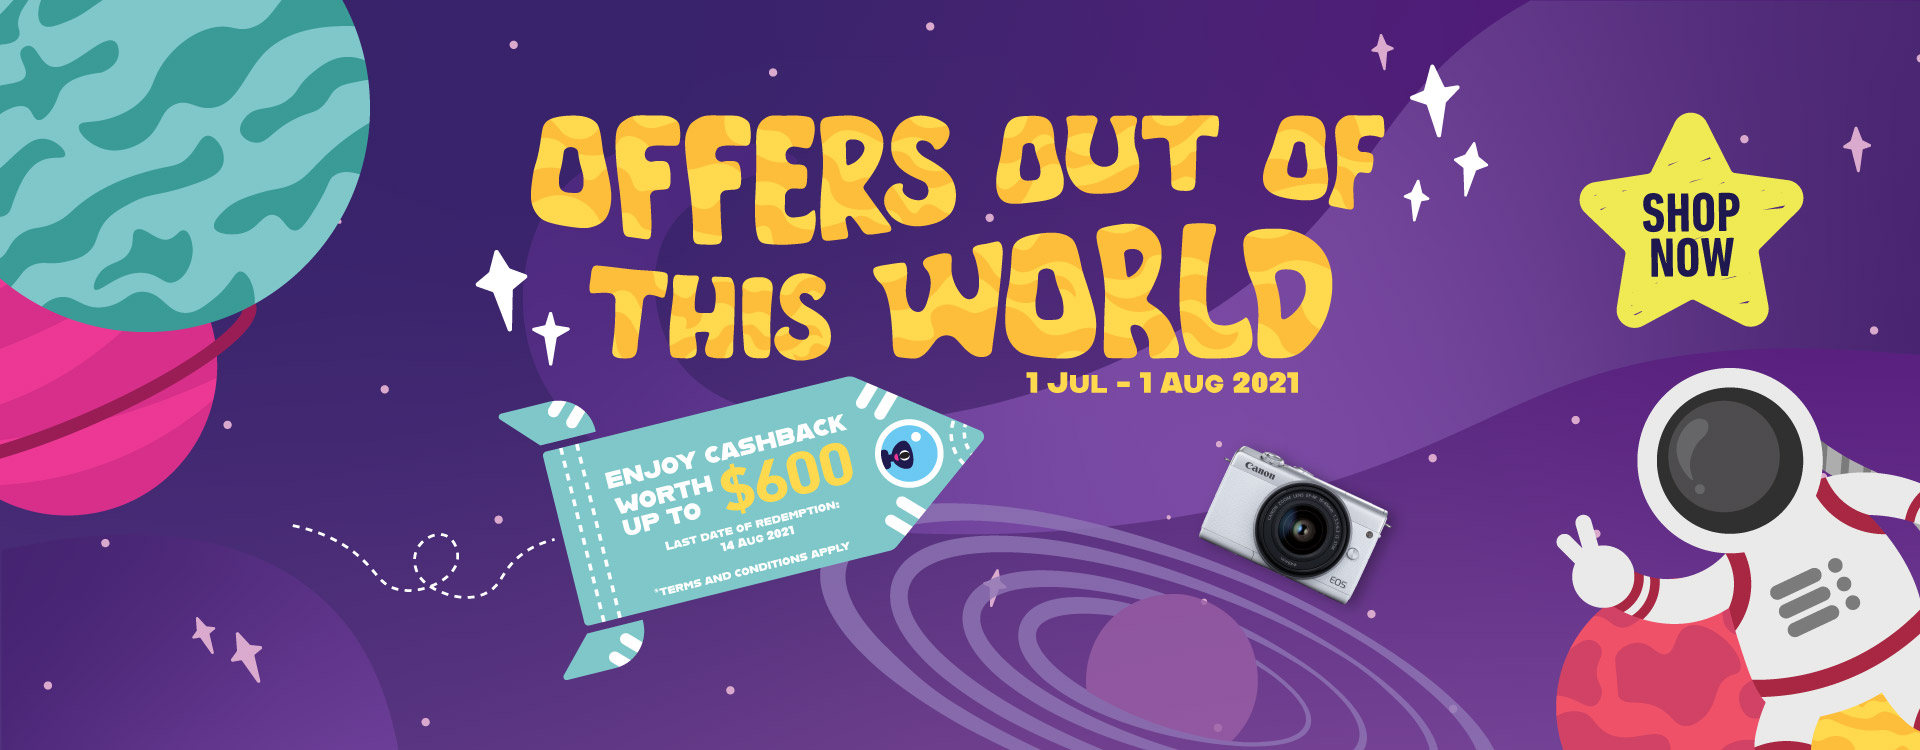 Offers Out of This World July